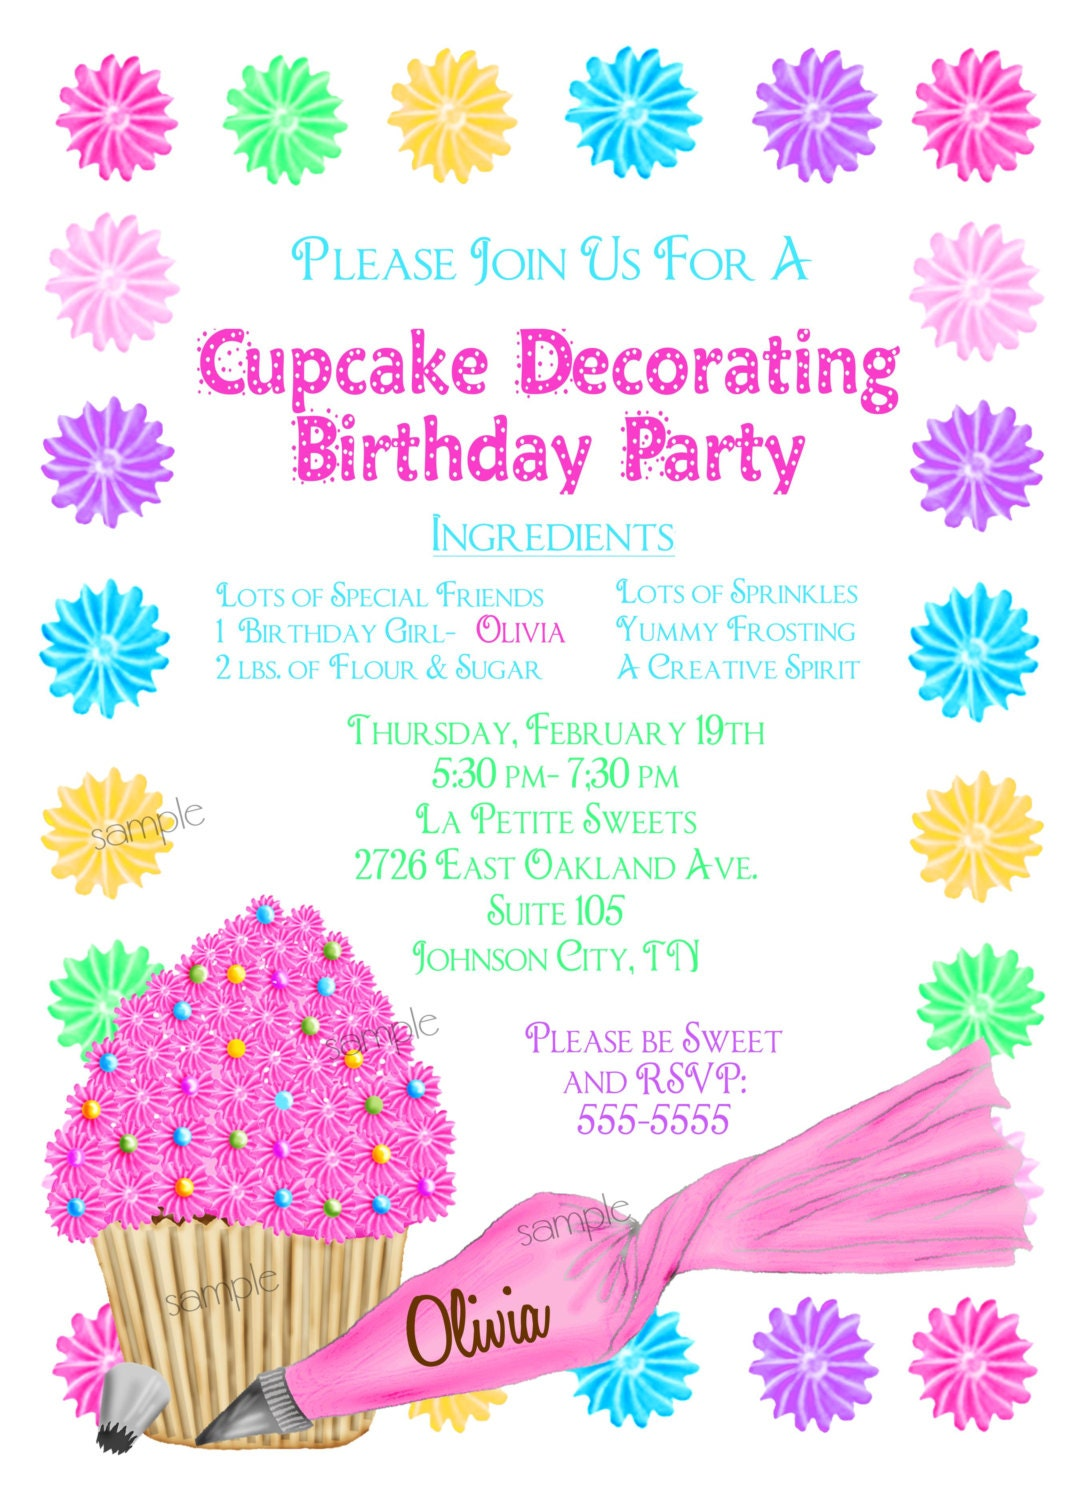 Cake Decorating Birthday Party Invitations : Cupcake Decorating Invitations Cupcake party Baking